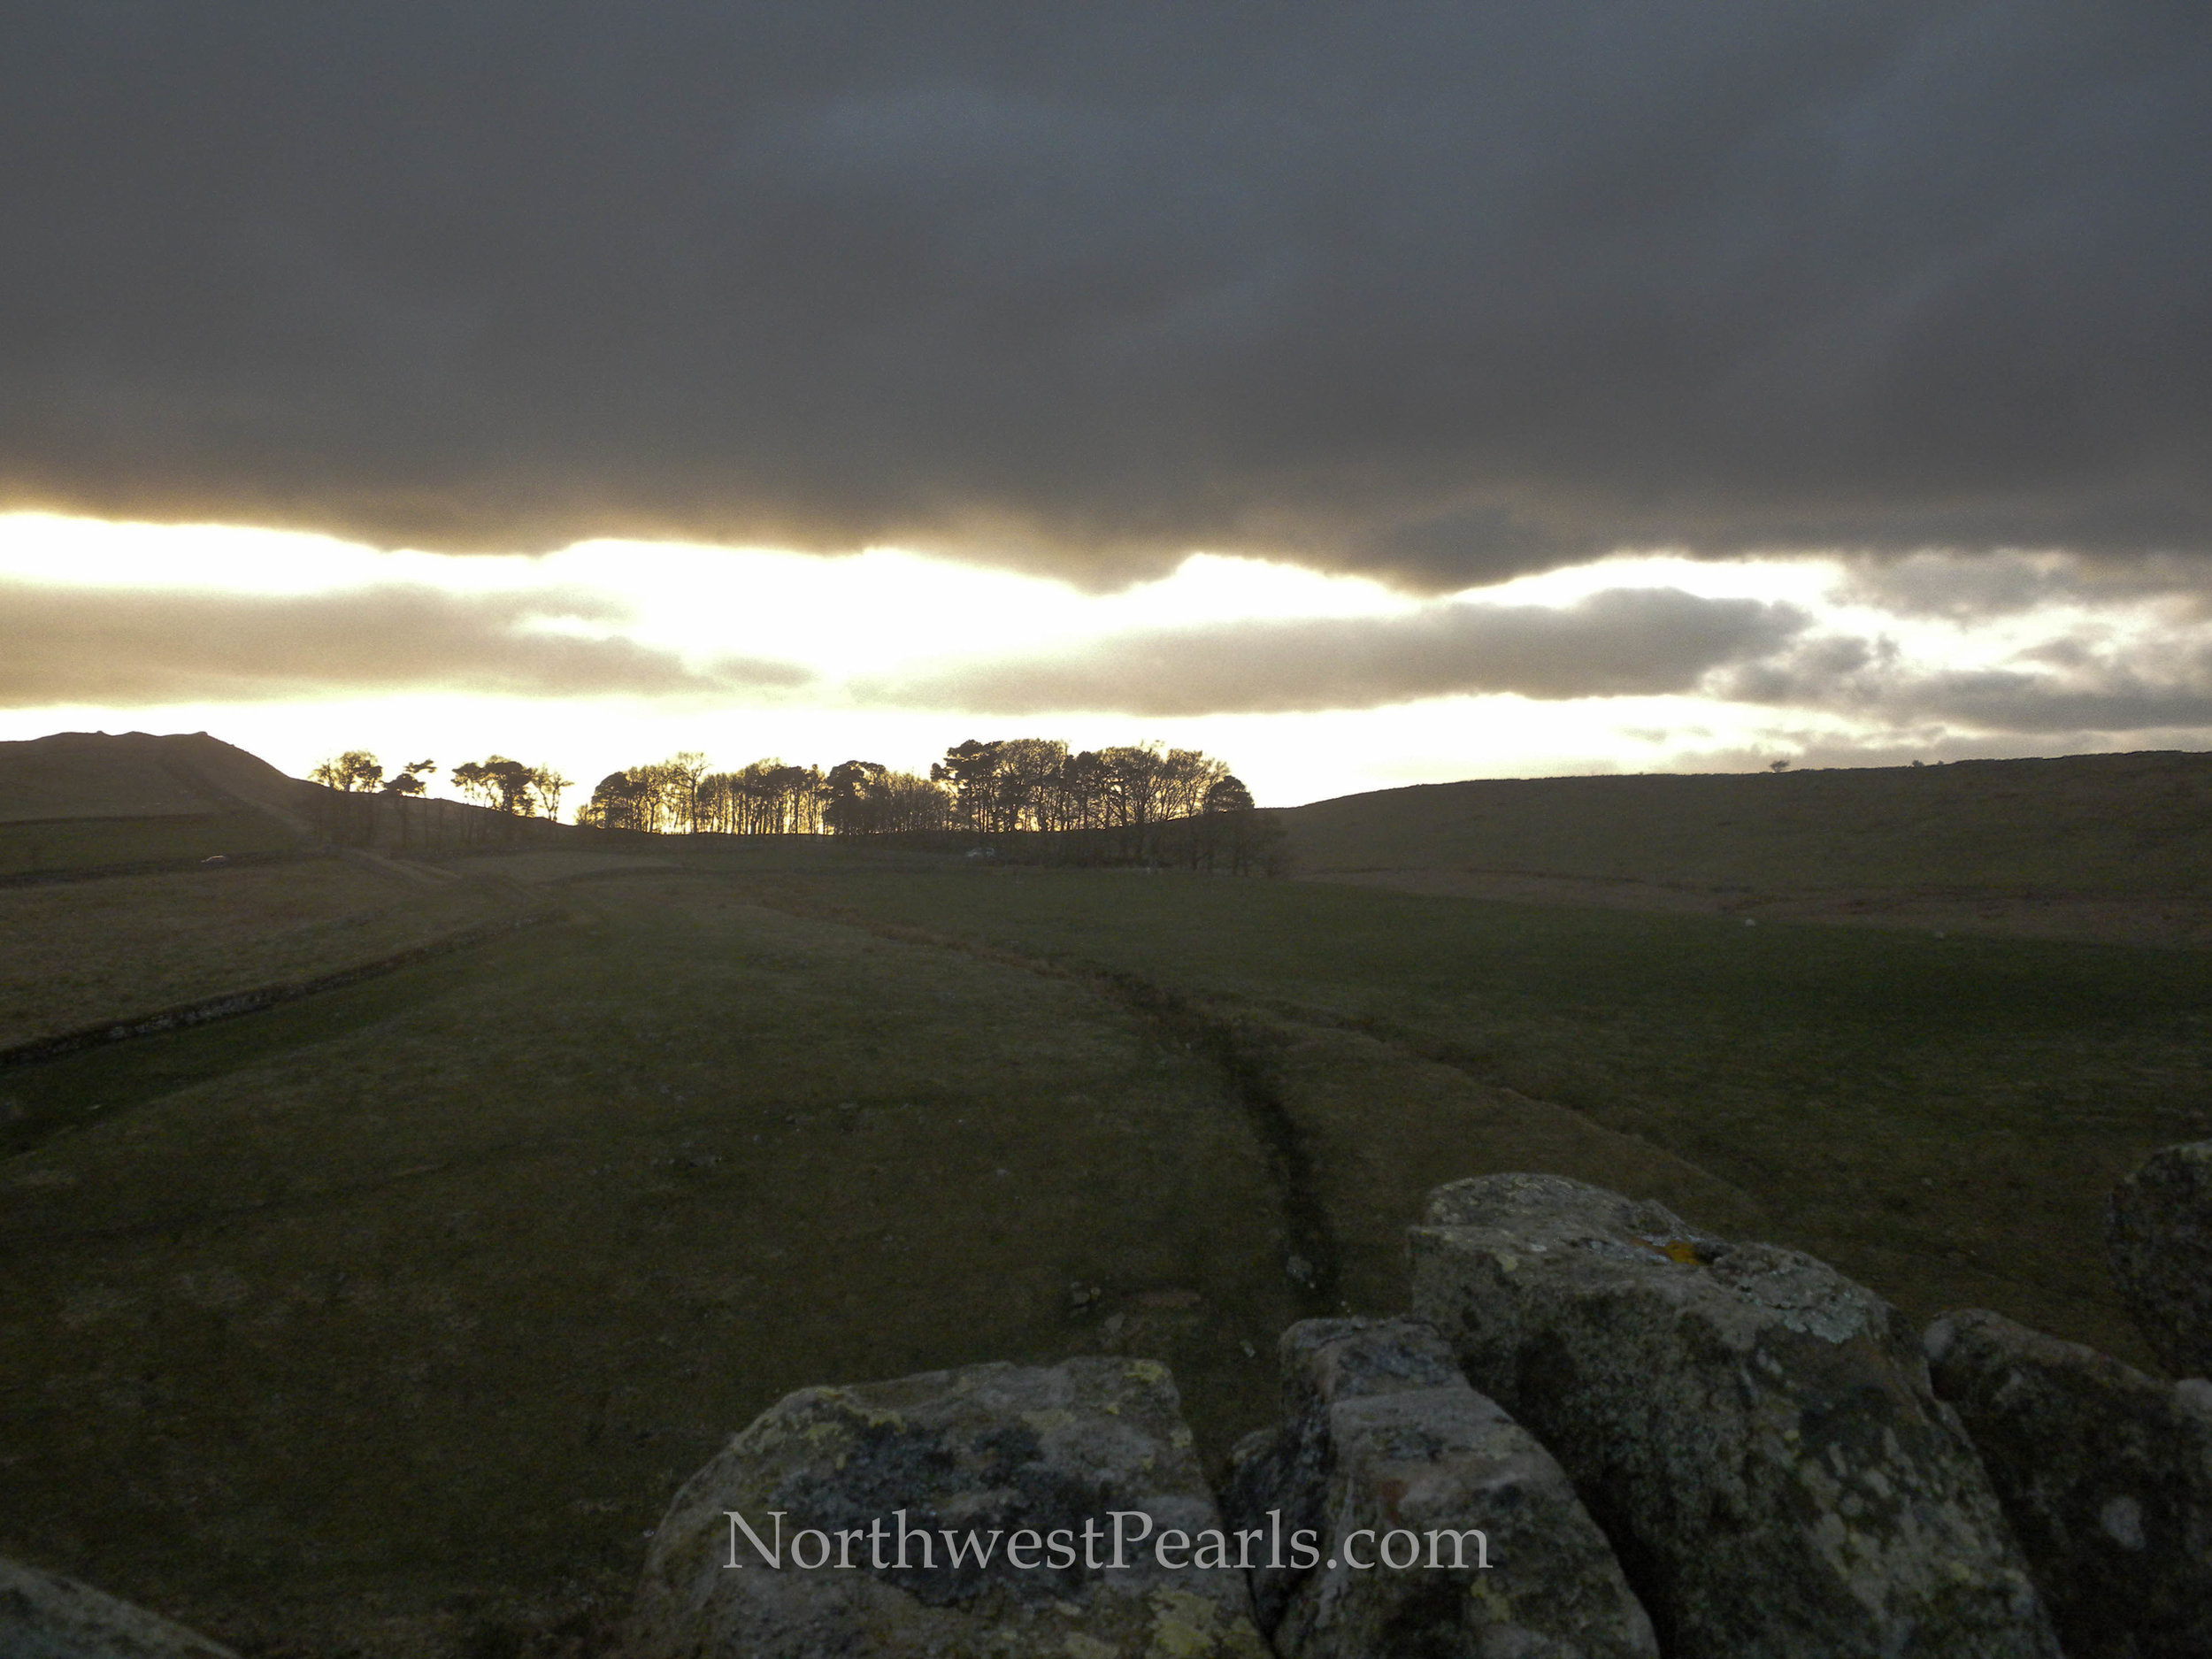 Northwest Pearls: Hadrian's Wall